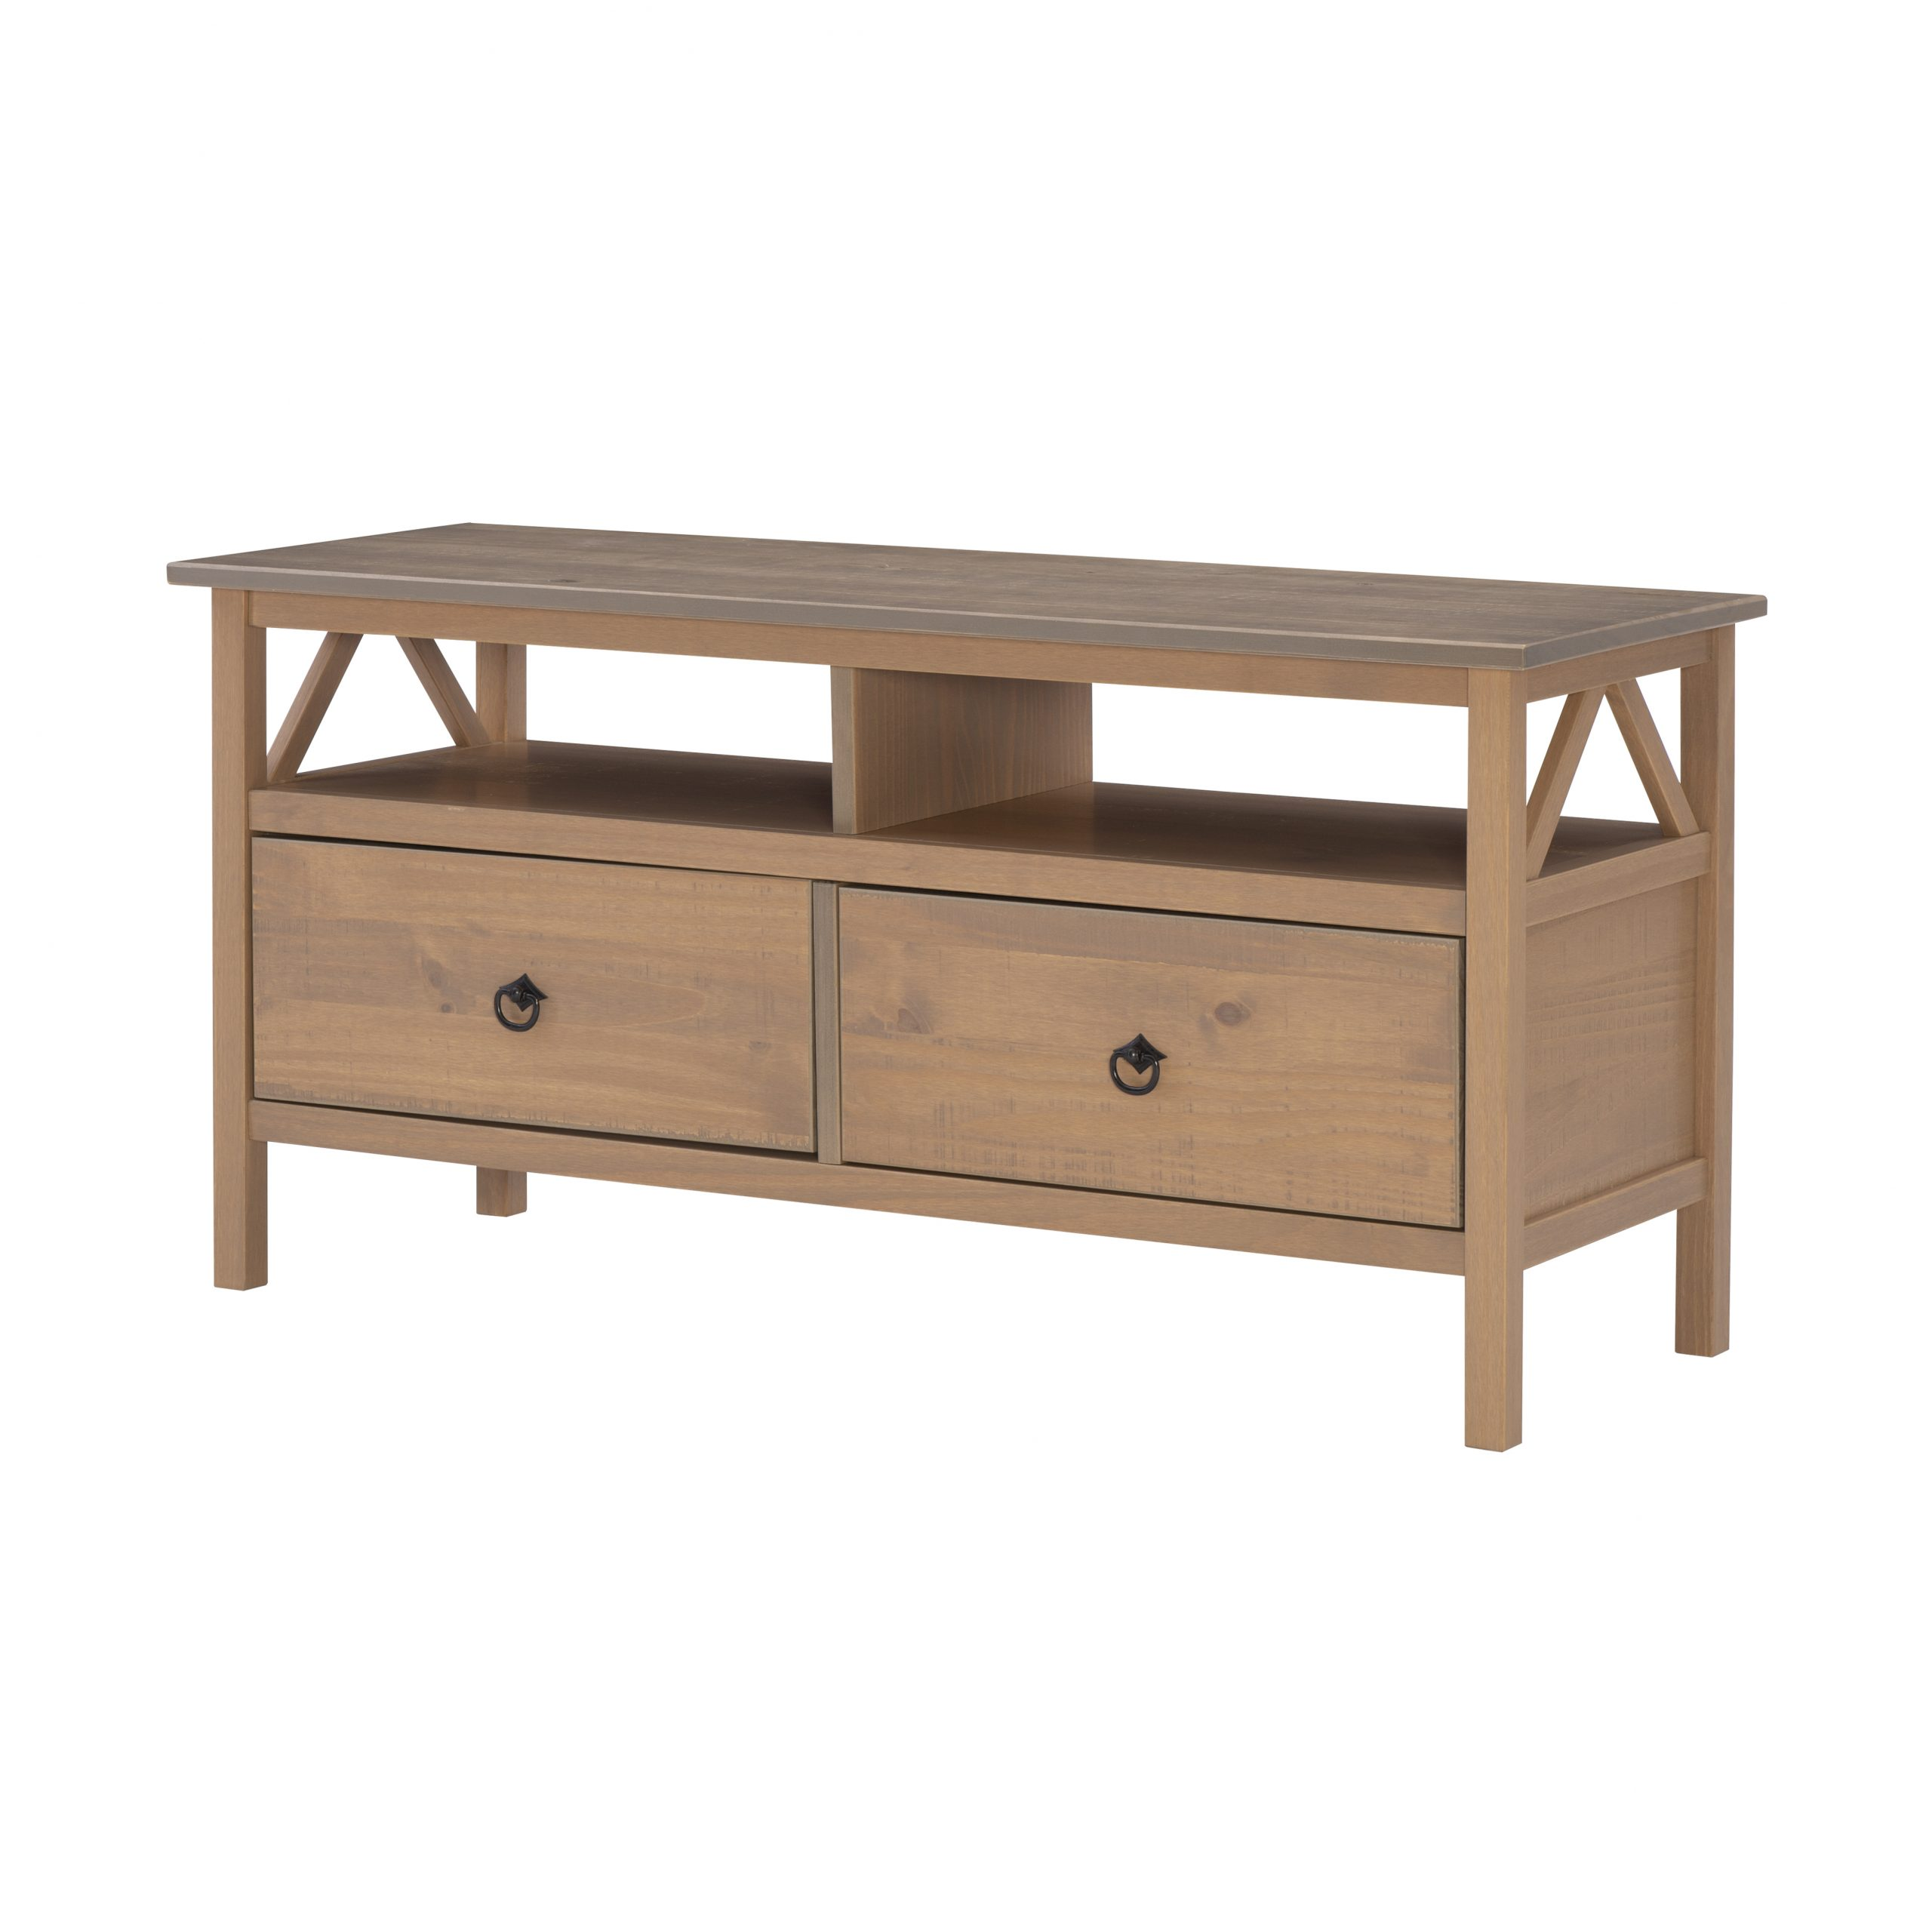 Linon Home Titian Tv Stand For Tvs Up To 40 Inches Pertaining To Mainstays Tv Stands For Tvs With Multiple Colors (View 18 of 20)